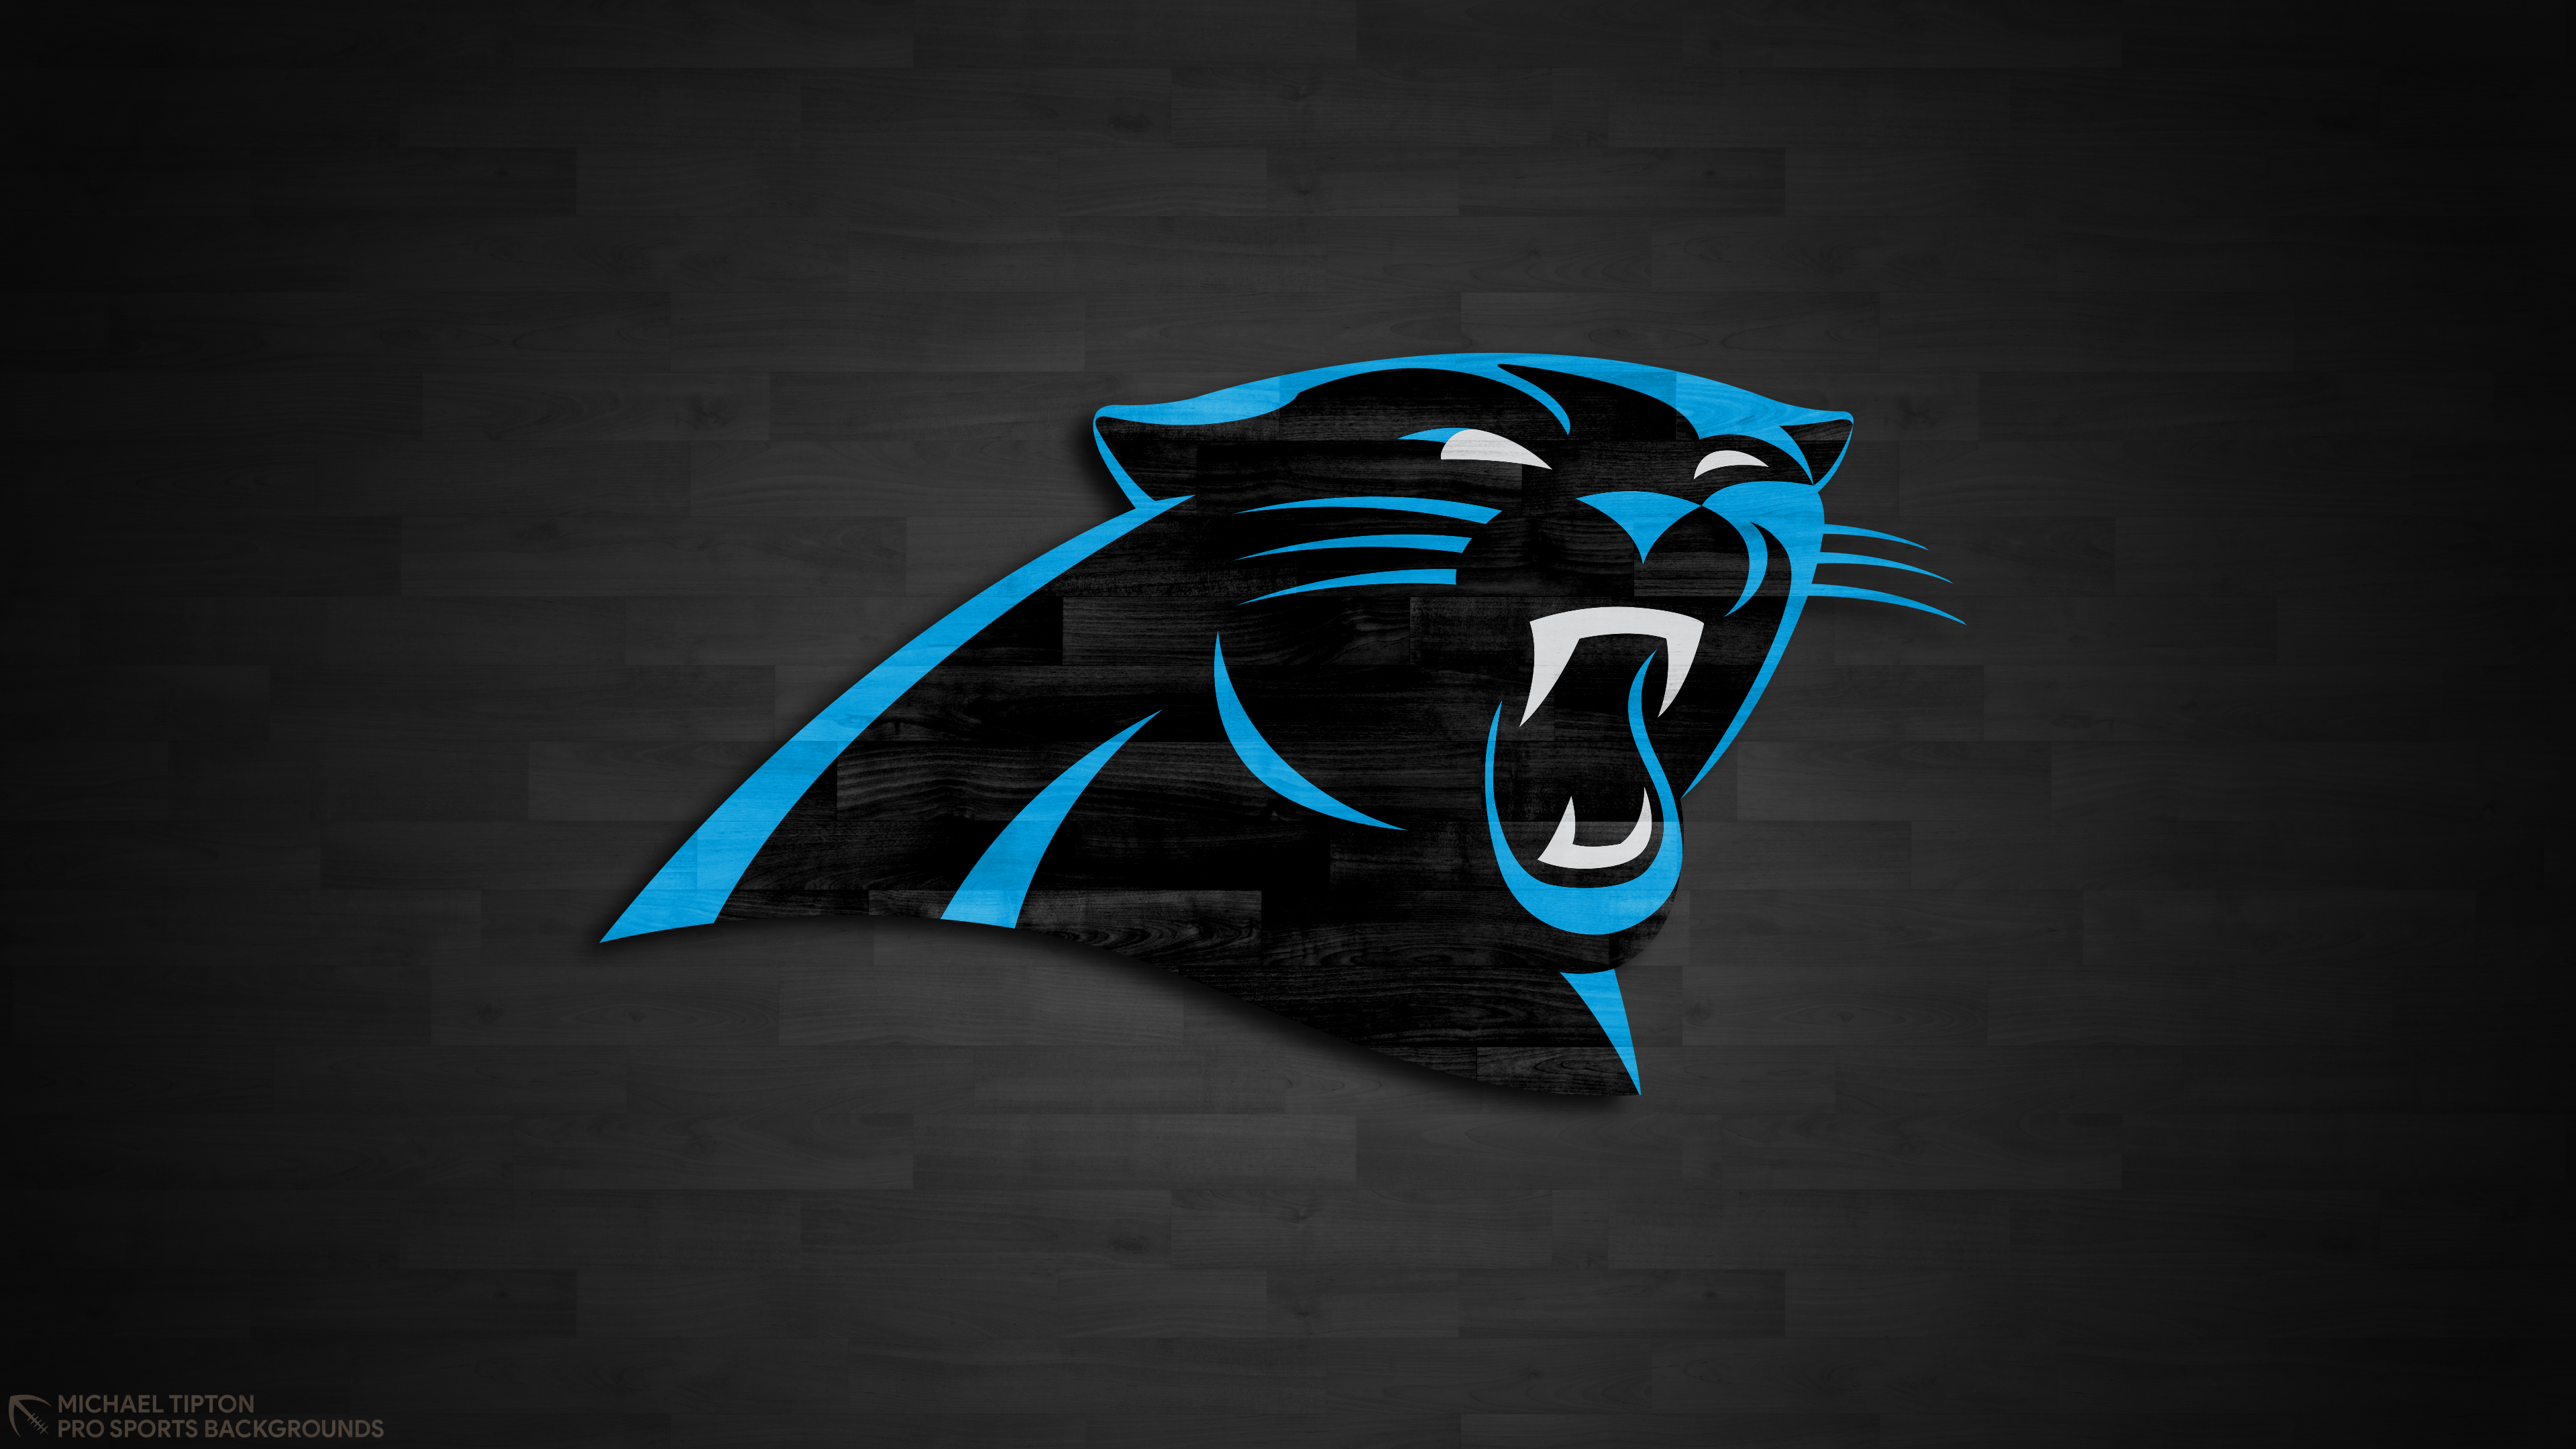 2019 Carolina Panthers Wallpapers Pro Sports Backgrounds 3840x2160